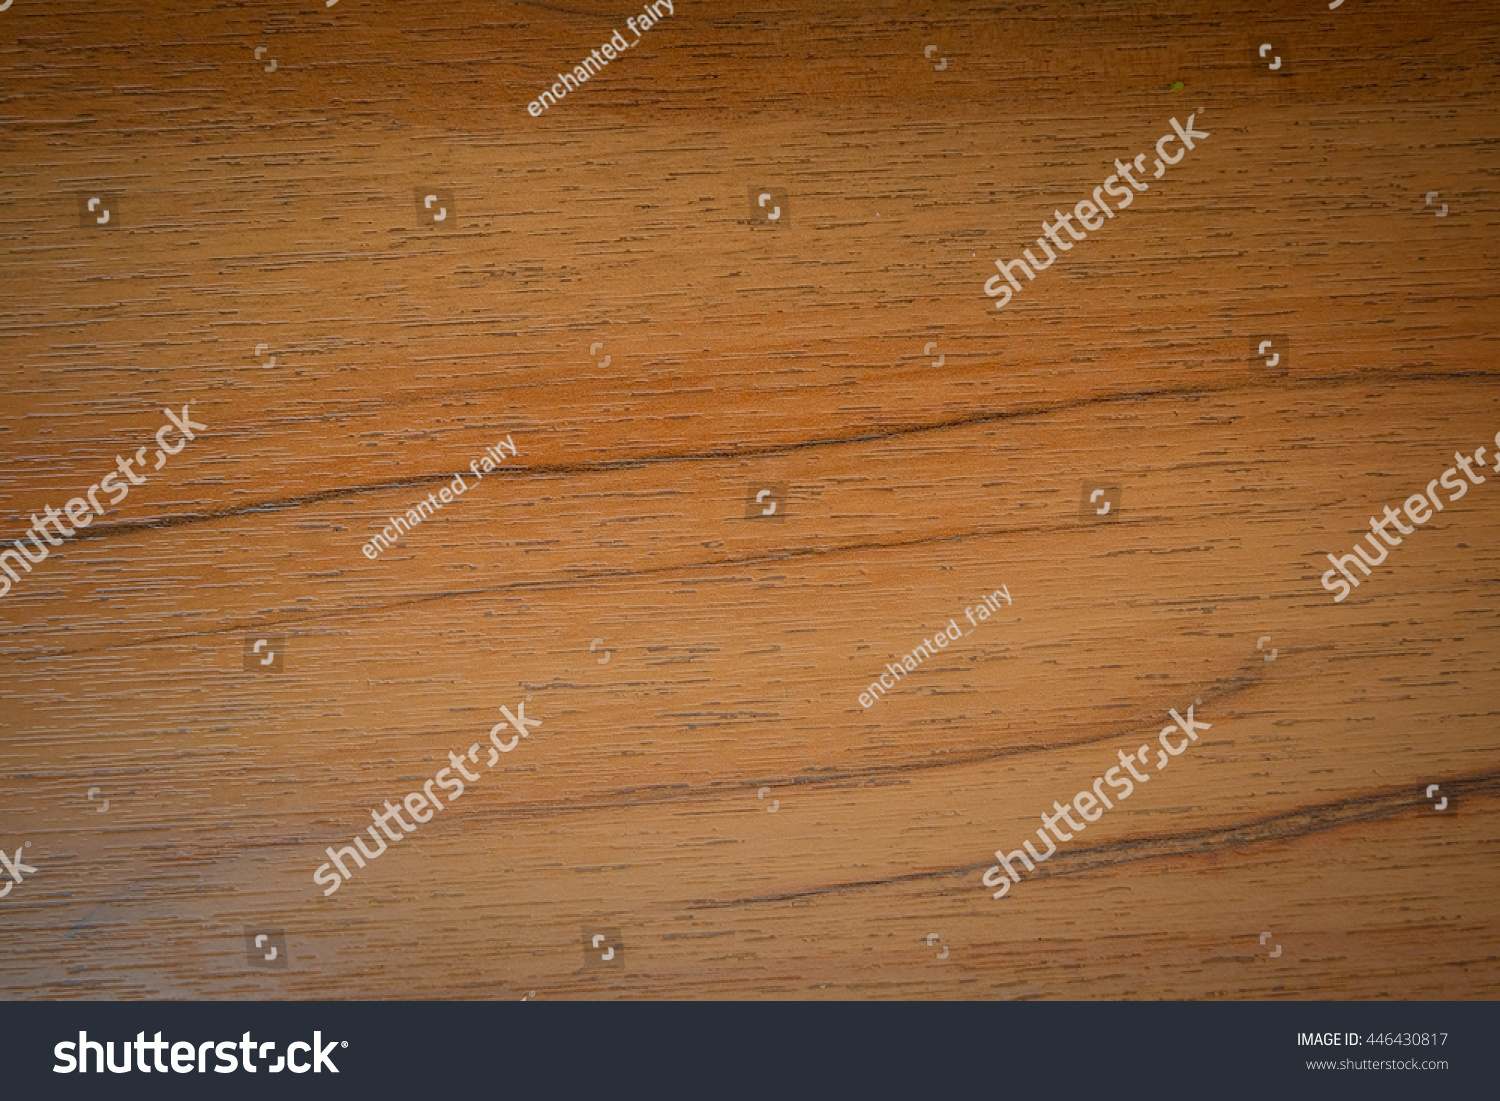 Wooden Table Surface ~ Wood texture surface wooden table stock photo